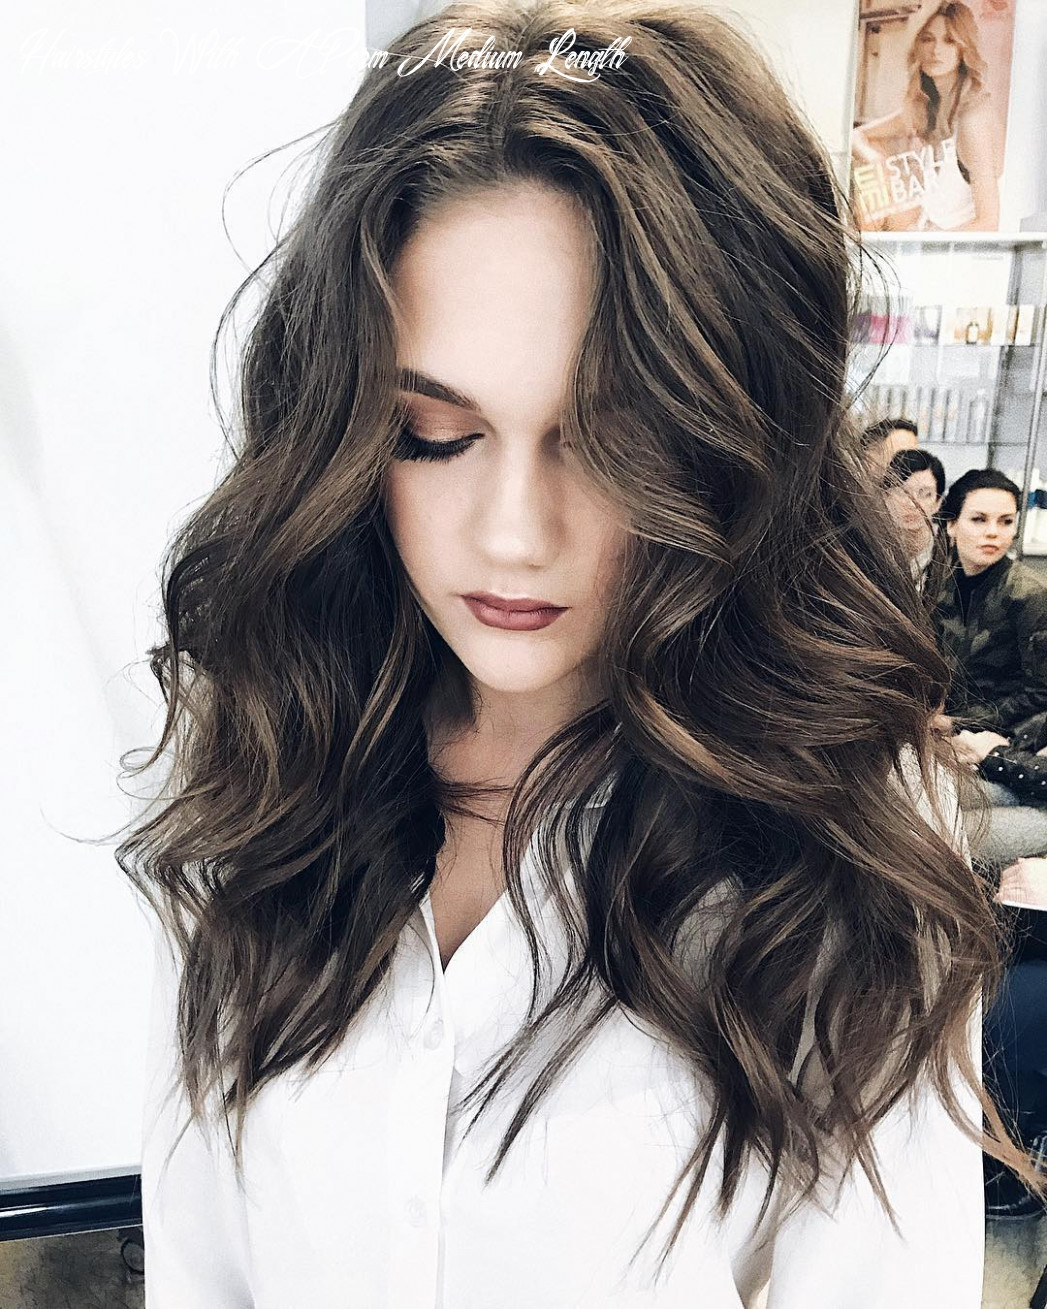 12 gorgeous long wavy perm hairstyles, long hair styles 12 hairstyles with a perm medium length